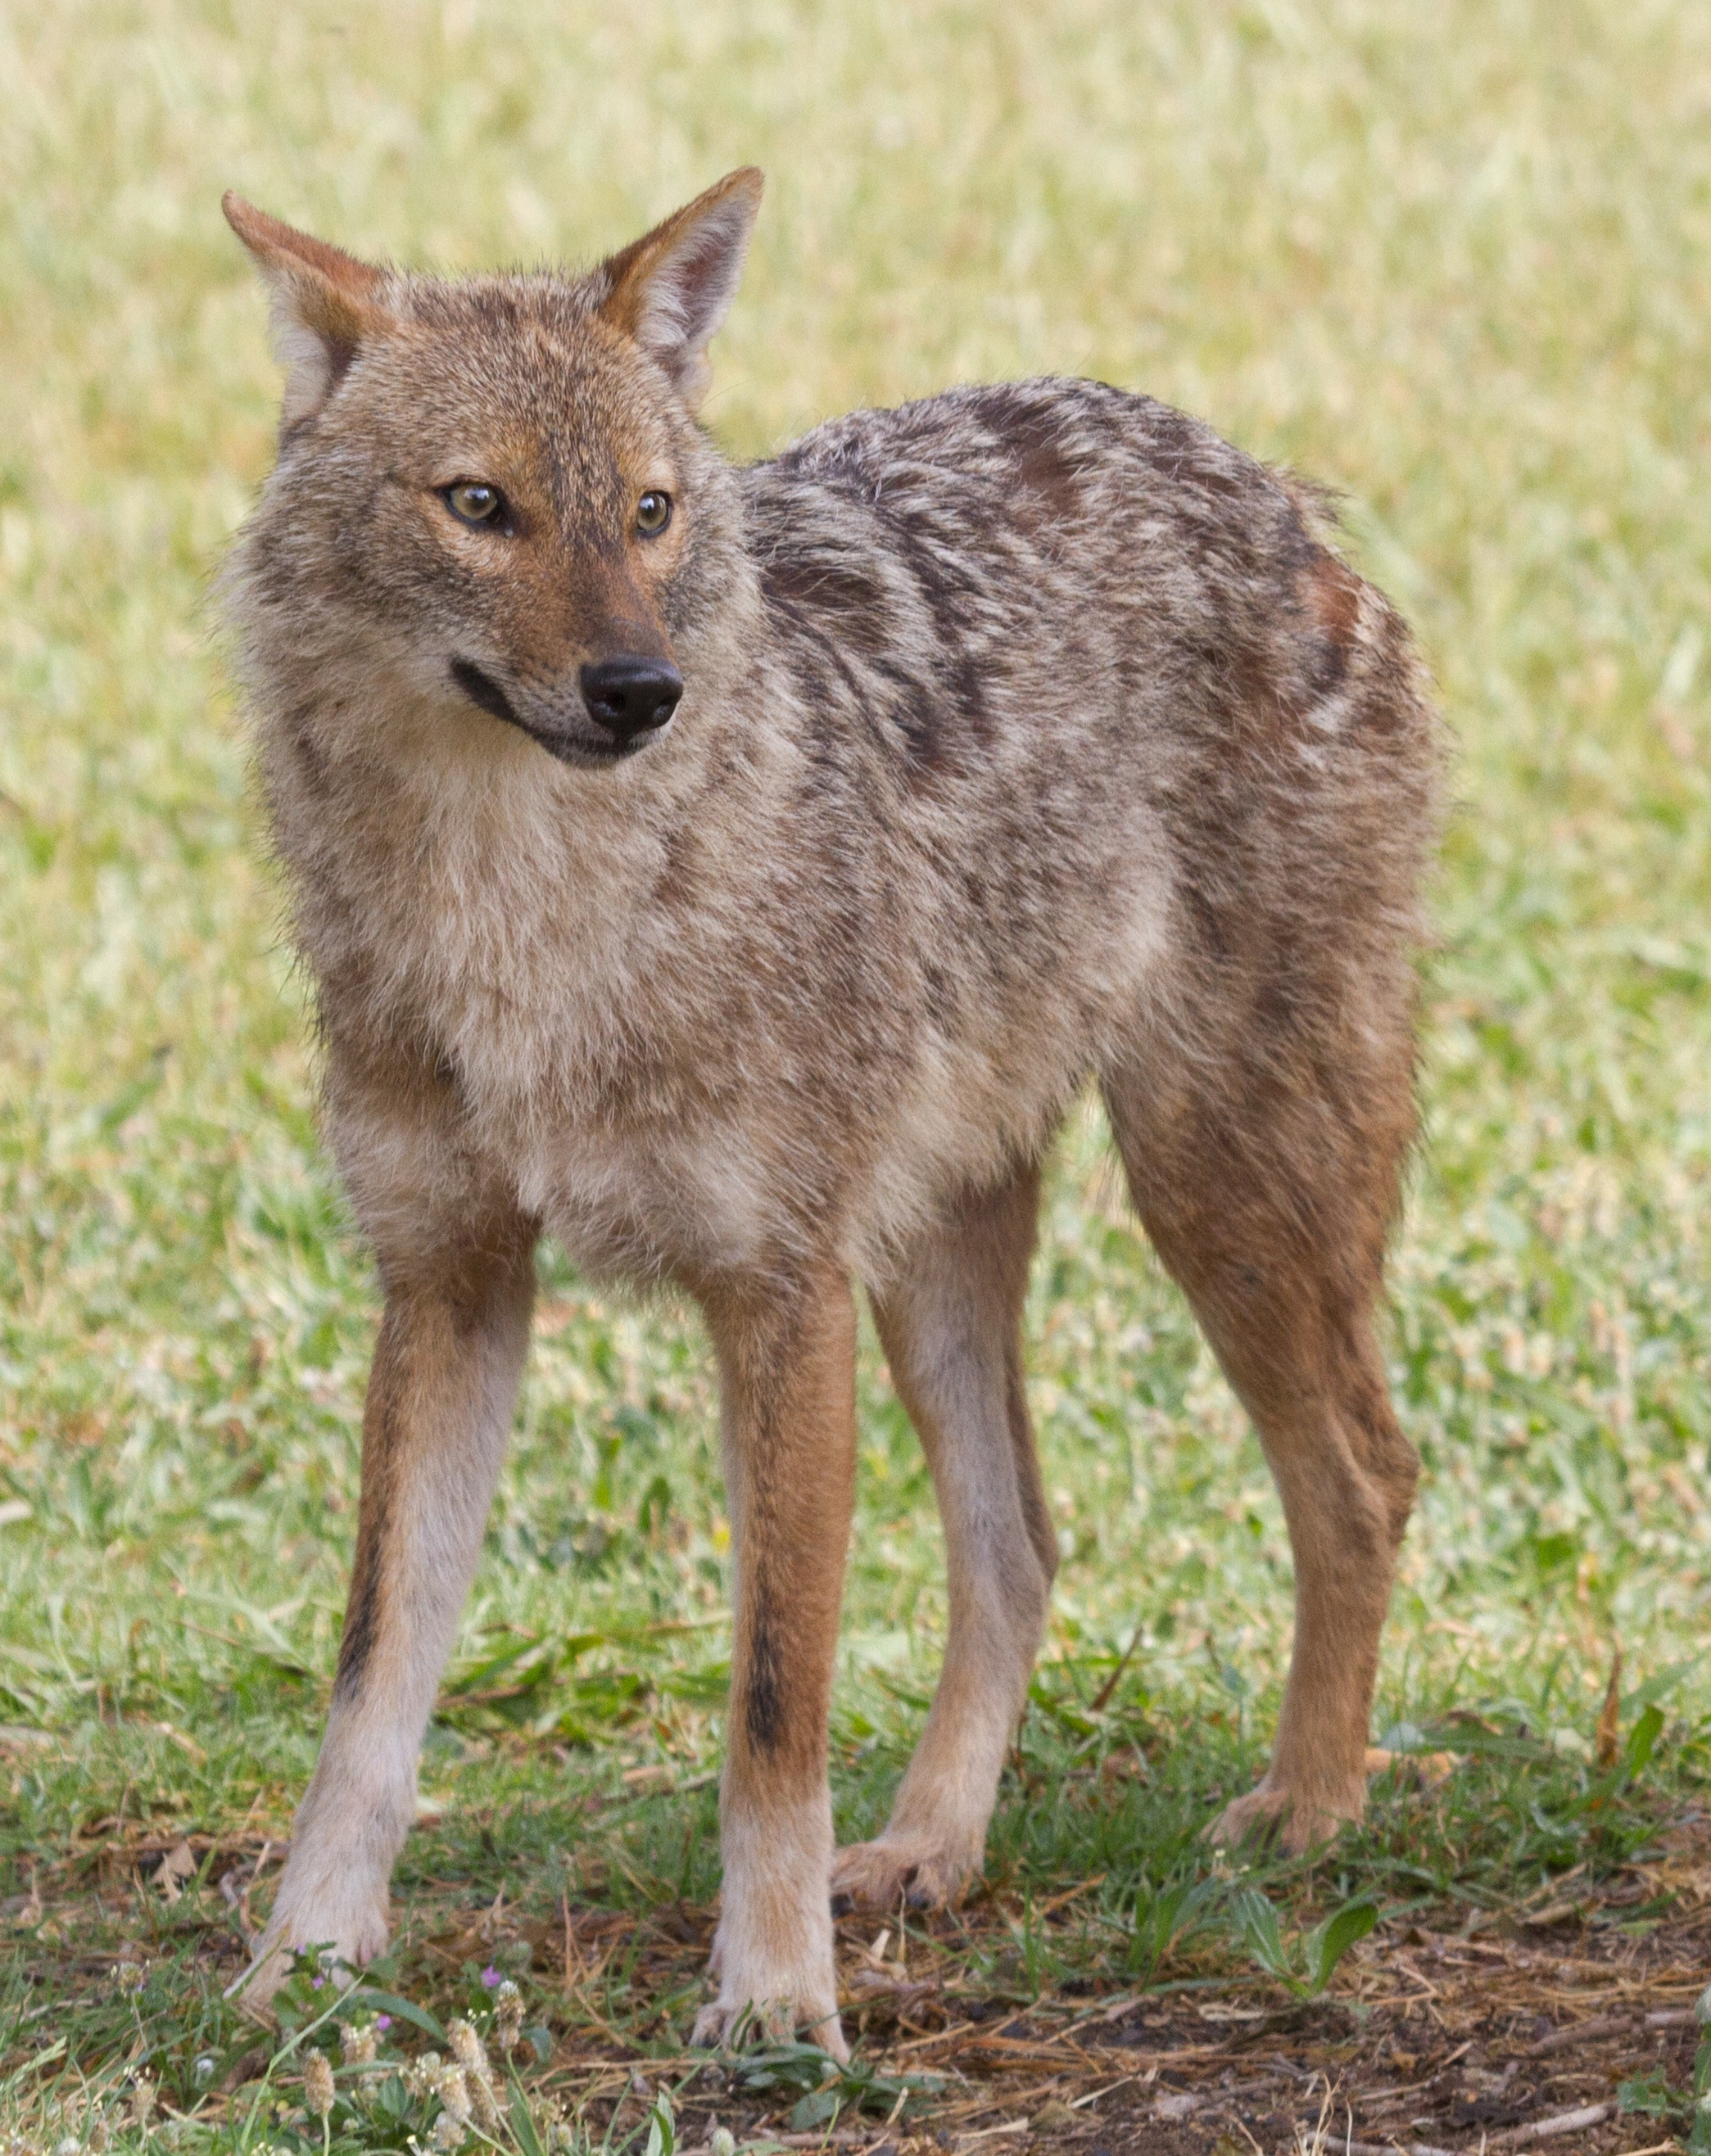 https://upload.wikimedia.org/wikipedia/commons/8/82/Canis_aureus_-_golden_jackal.jpg